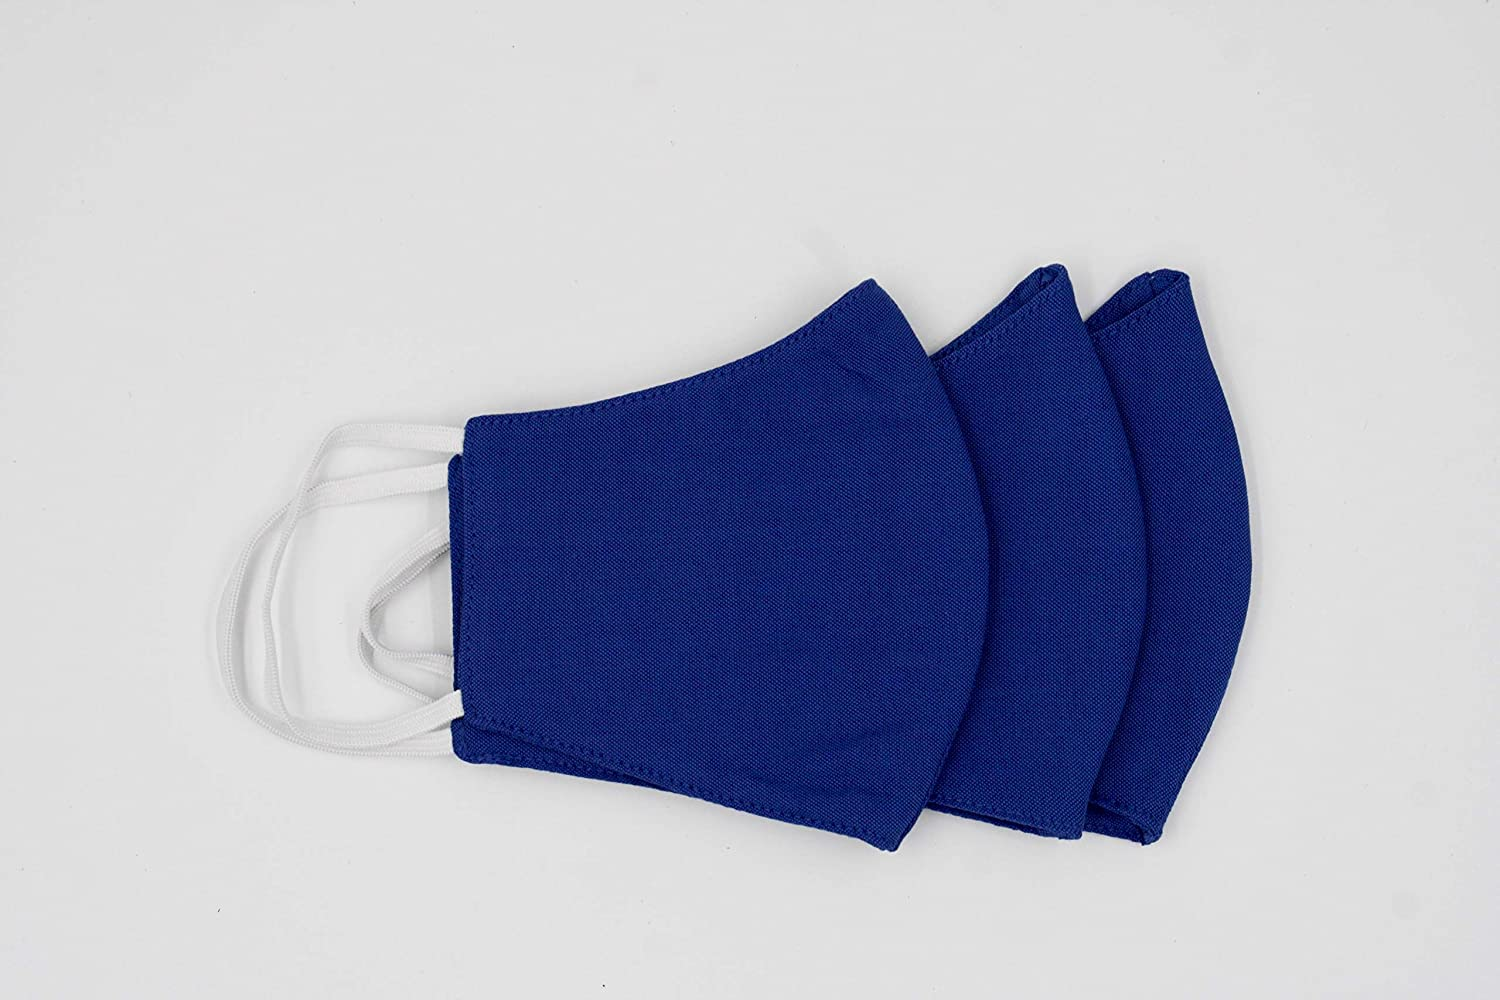 Everyday 2.0 Mask 3 Pack (Blue)